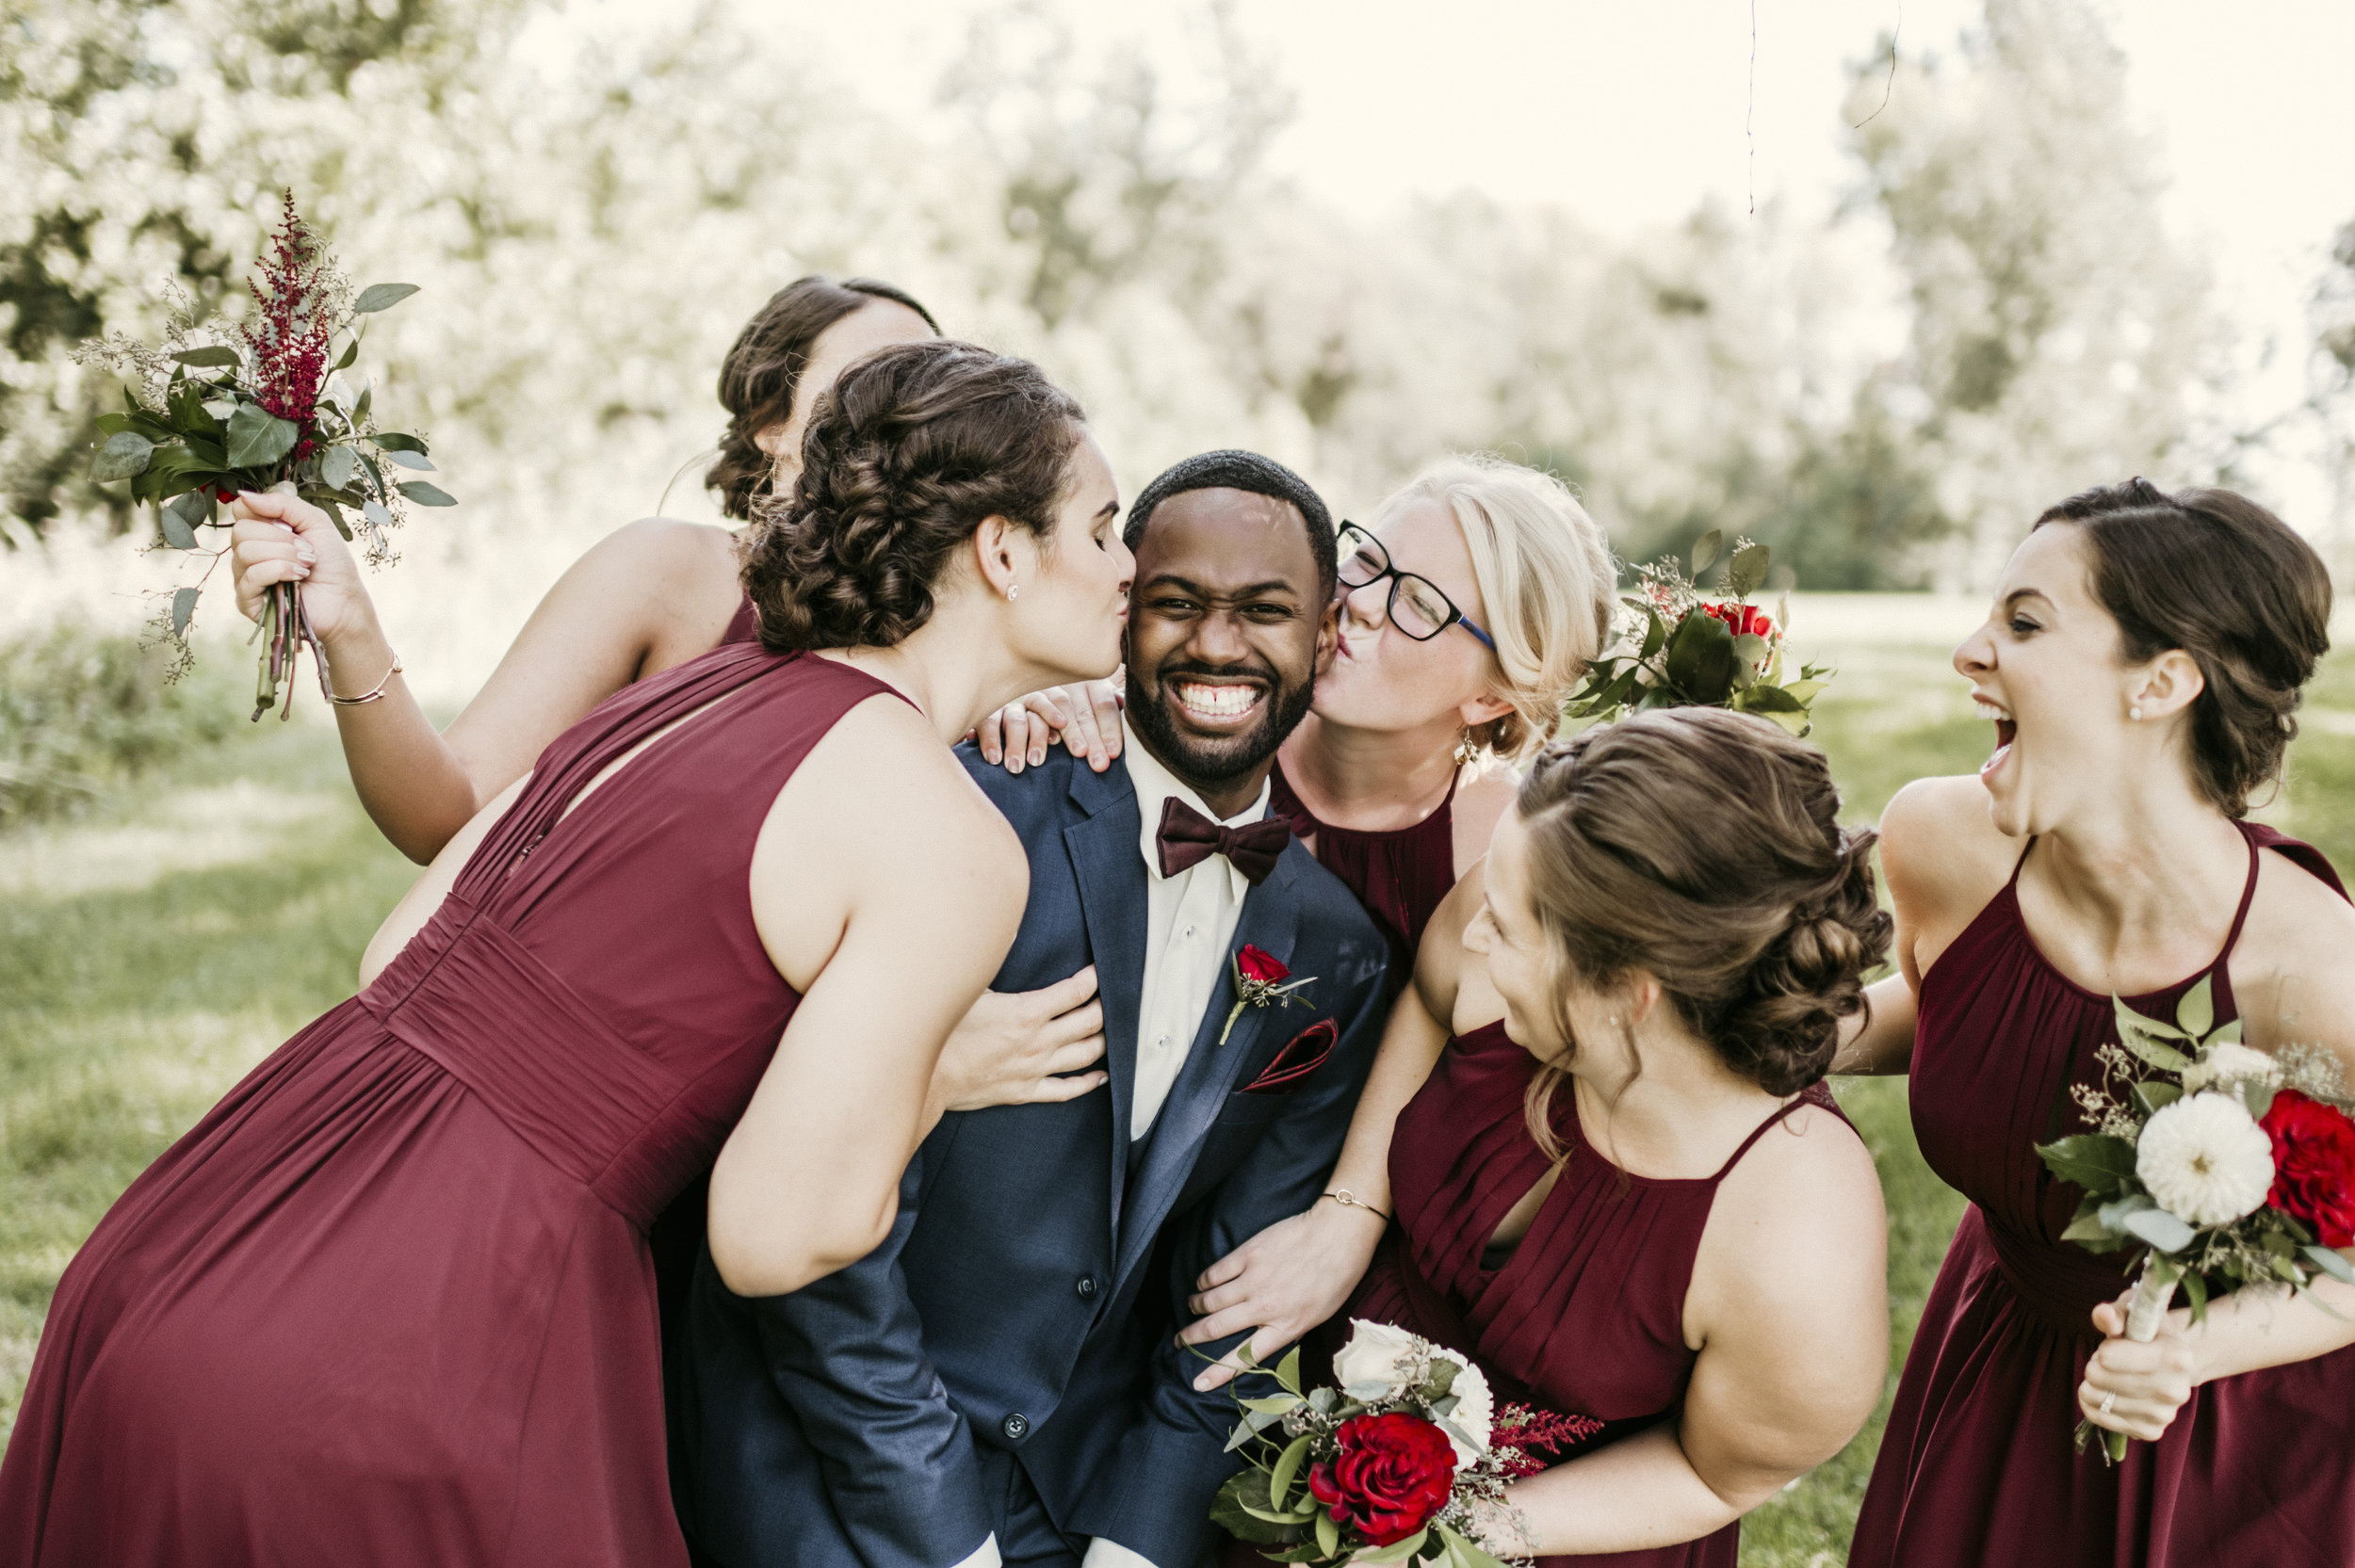 Groom & Bridesmaids